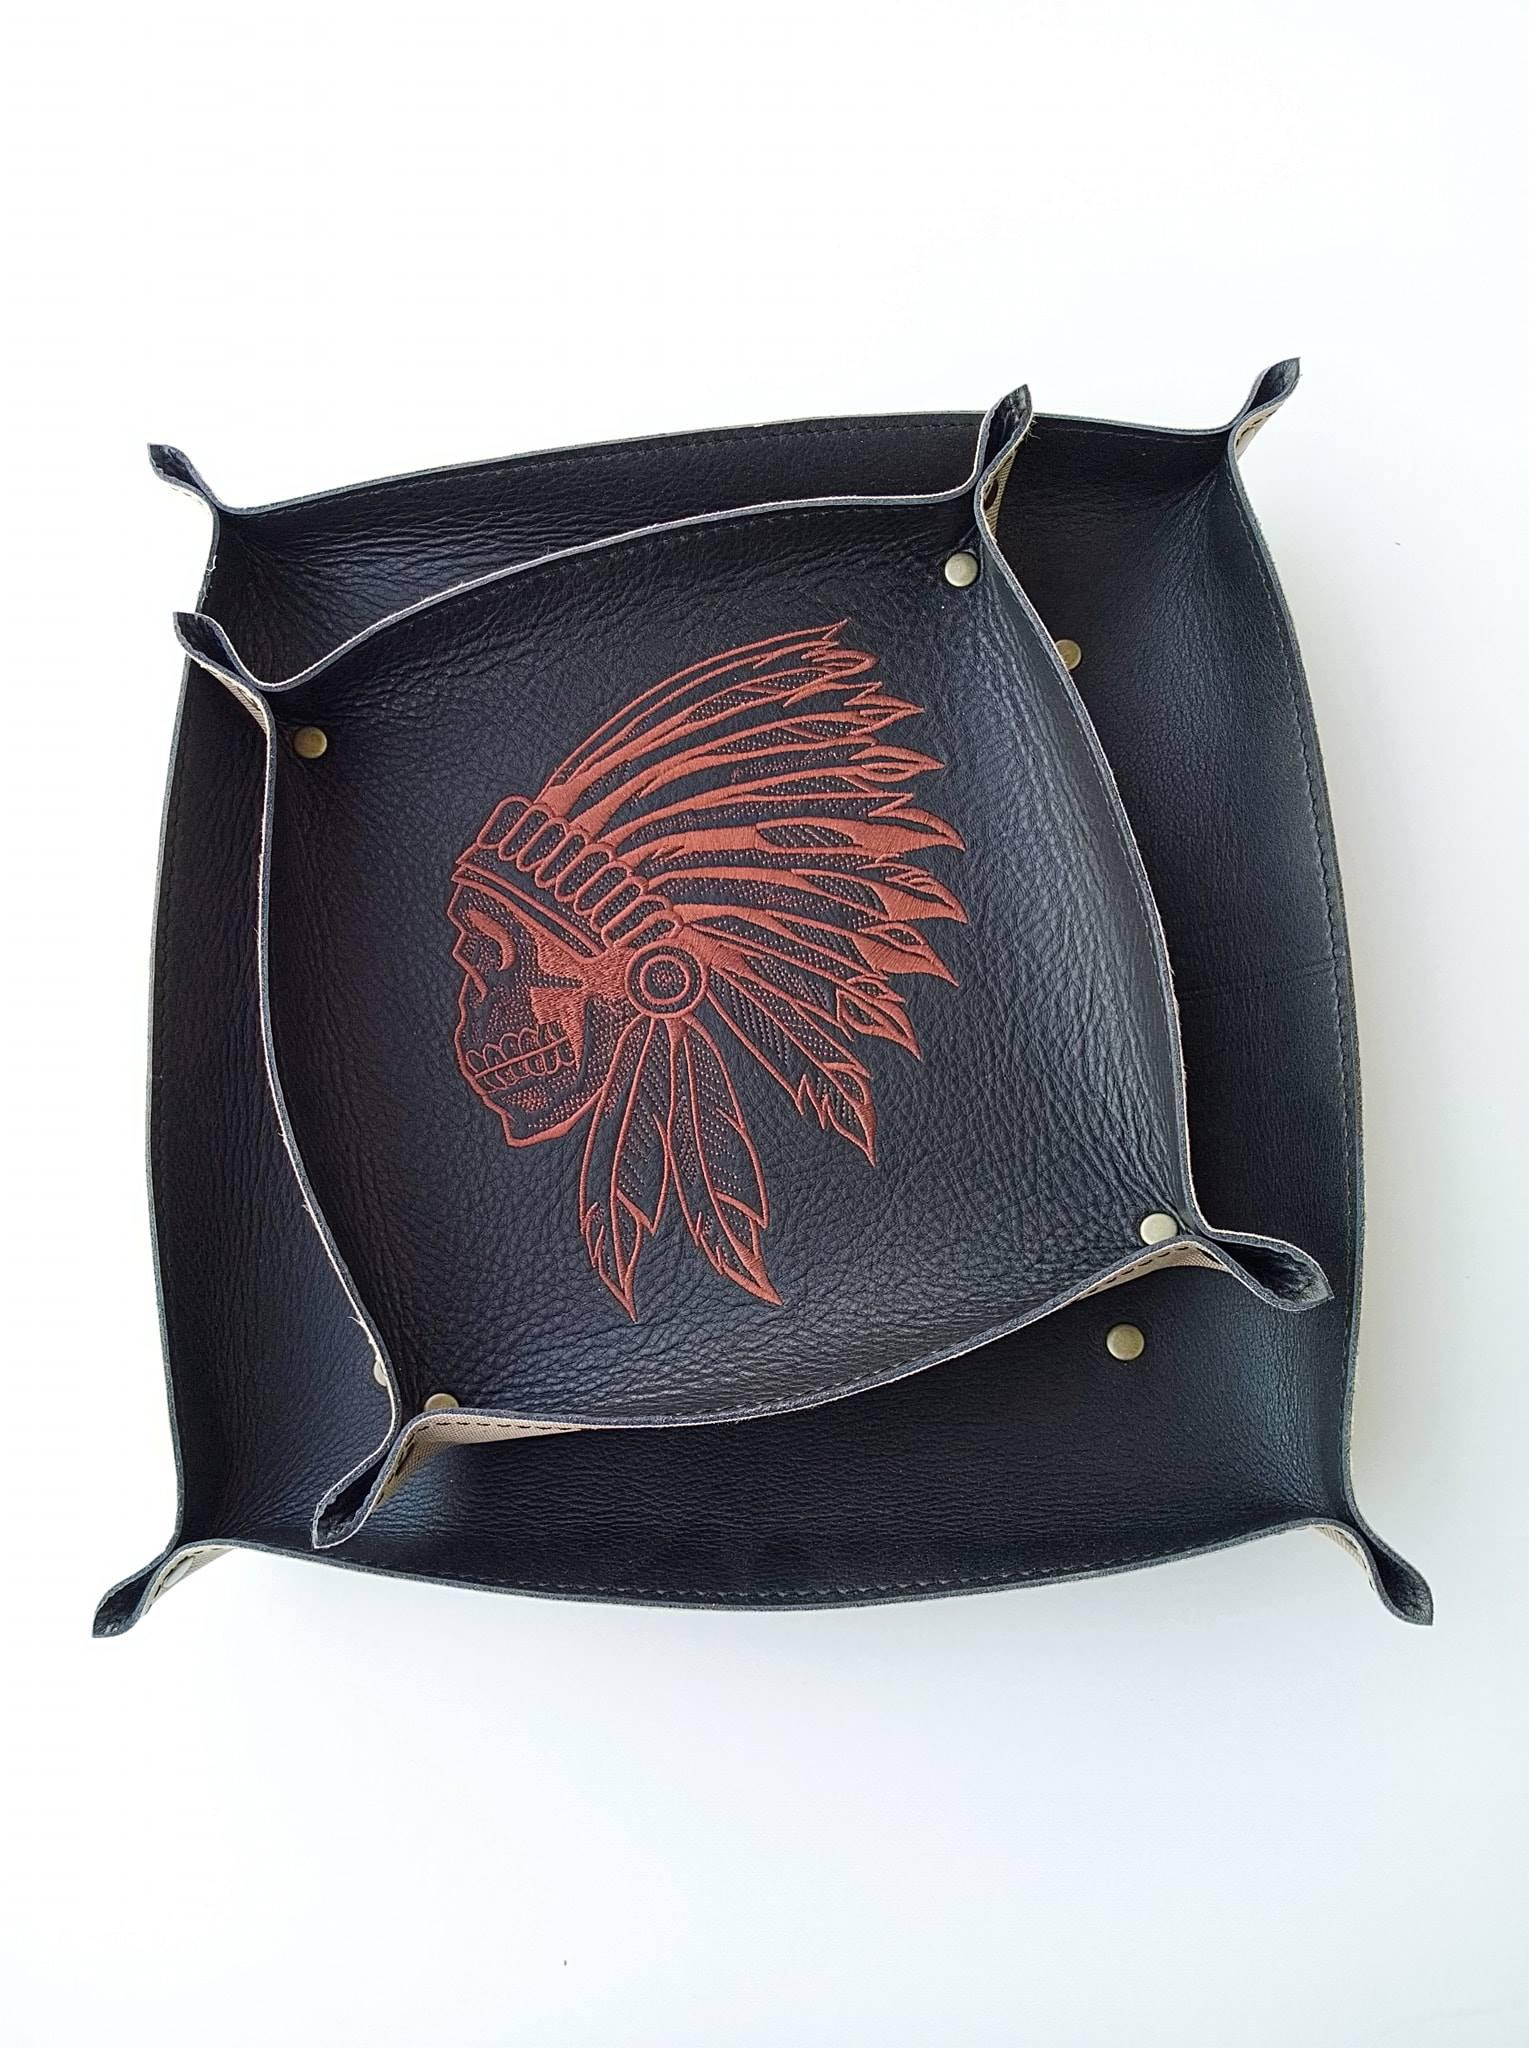 Embroidered leather plates with Indian skull design